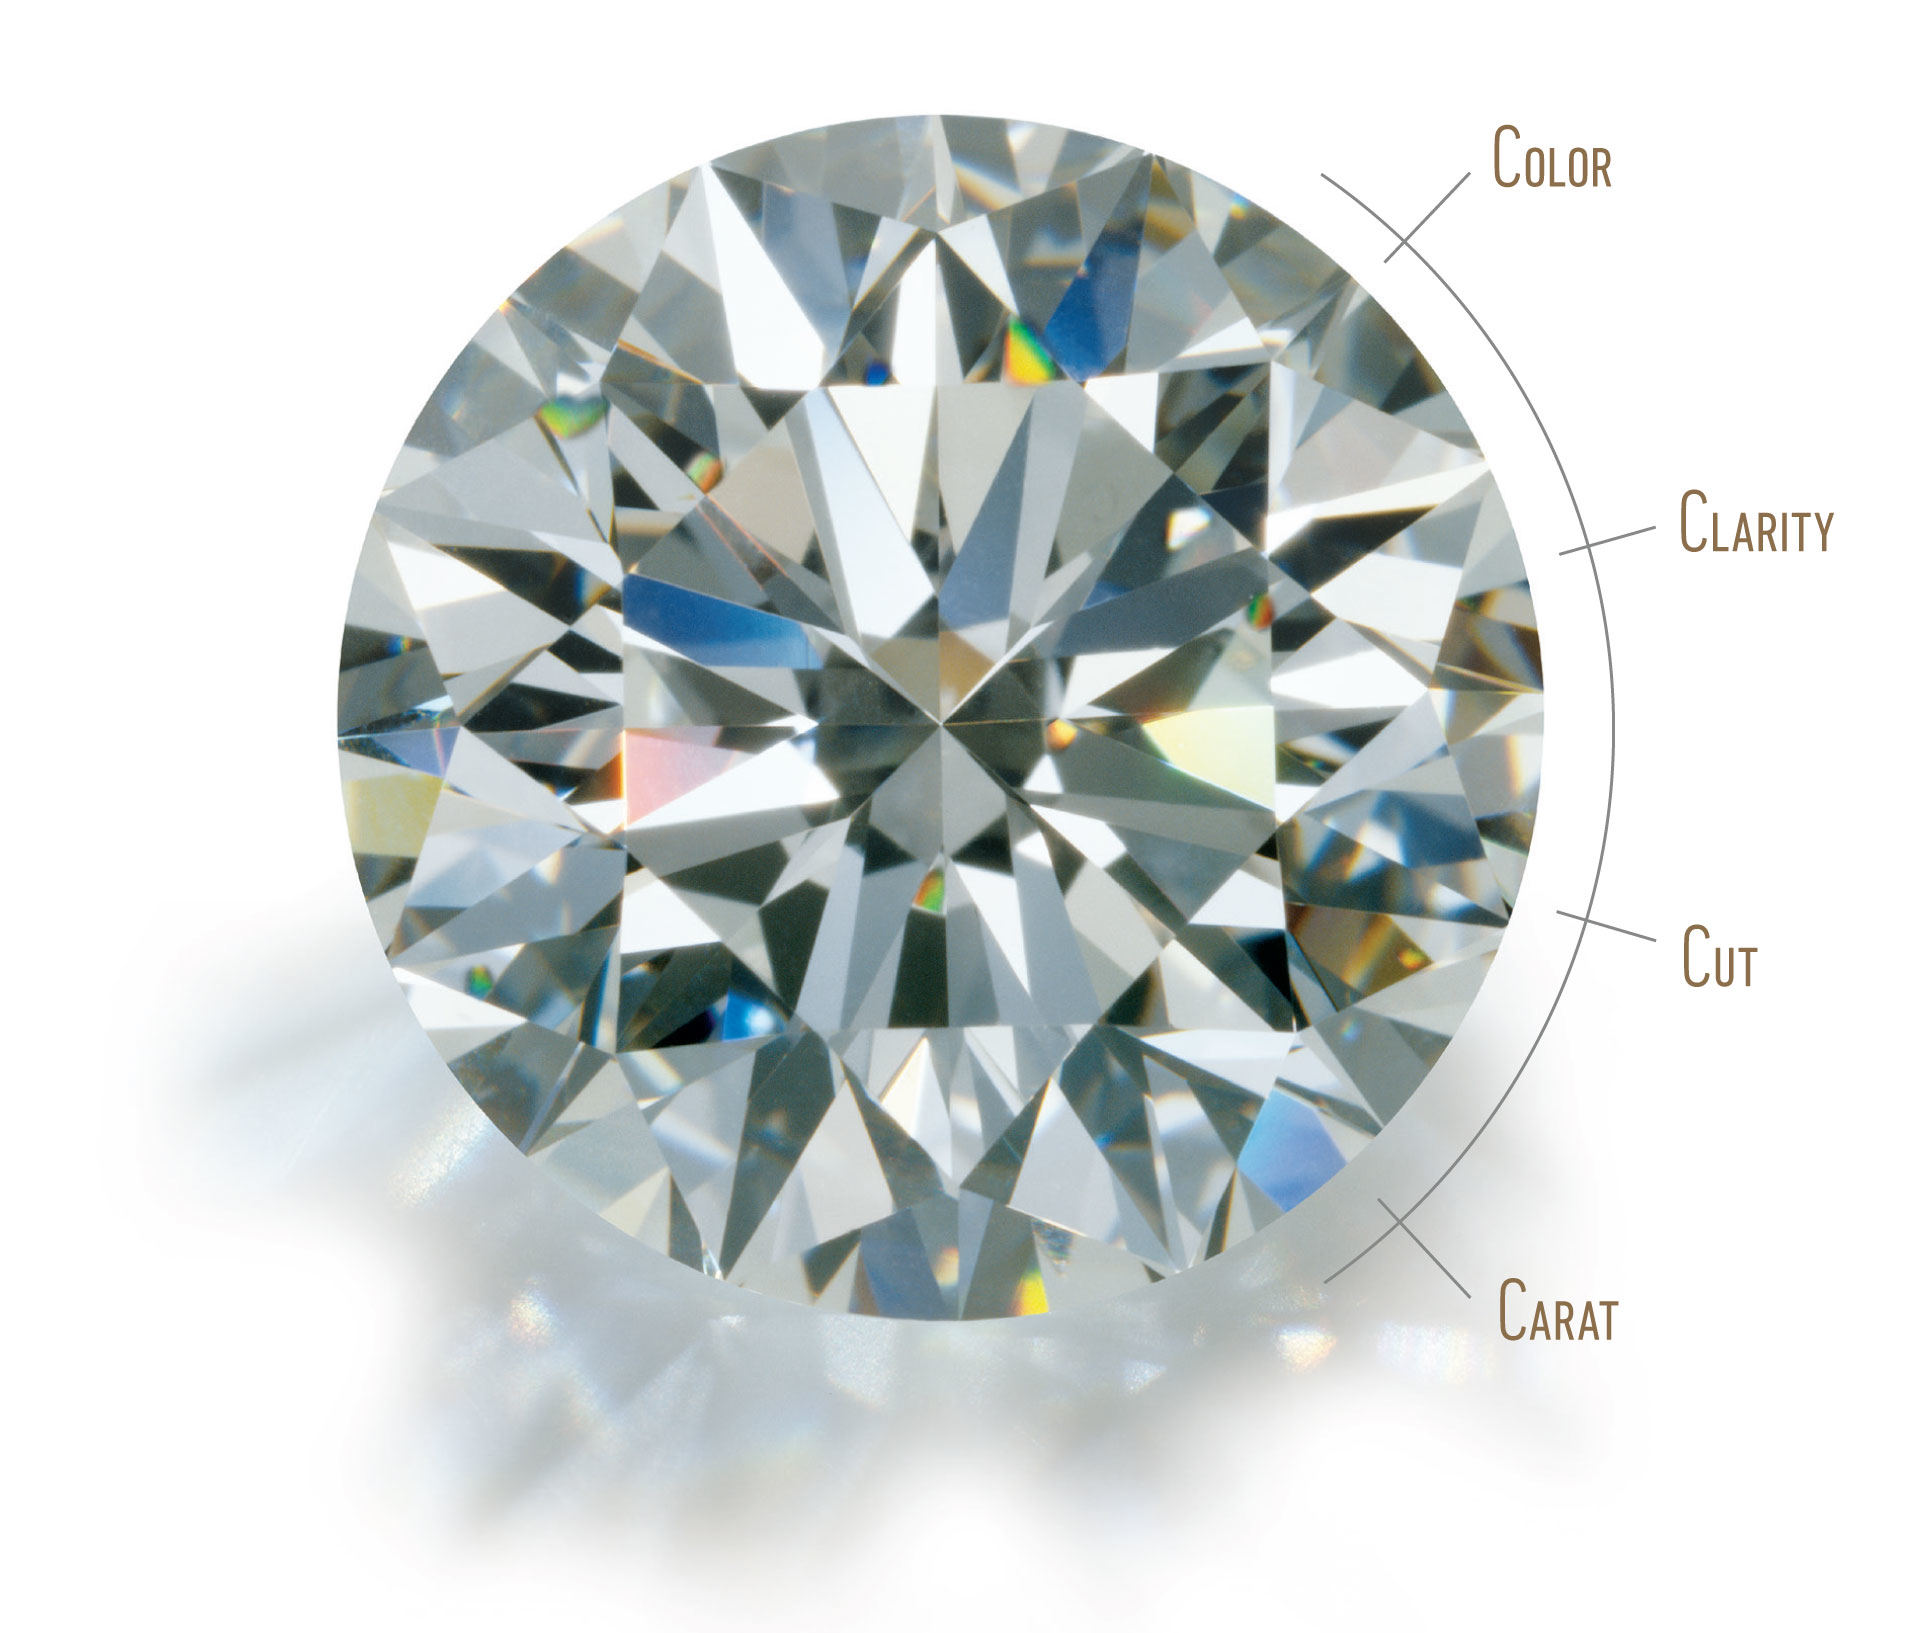 GIA 4Cs of diamond quality: Color, Clarity, Cut and Carat Weight